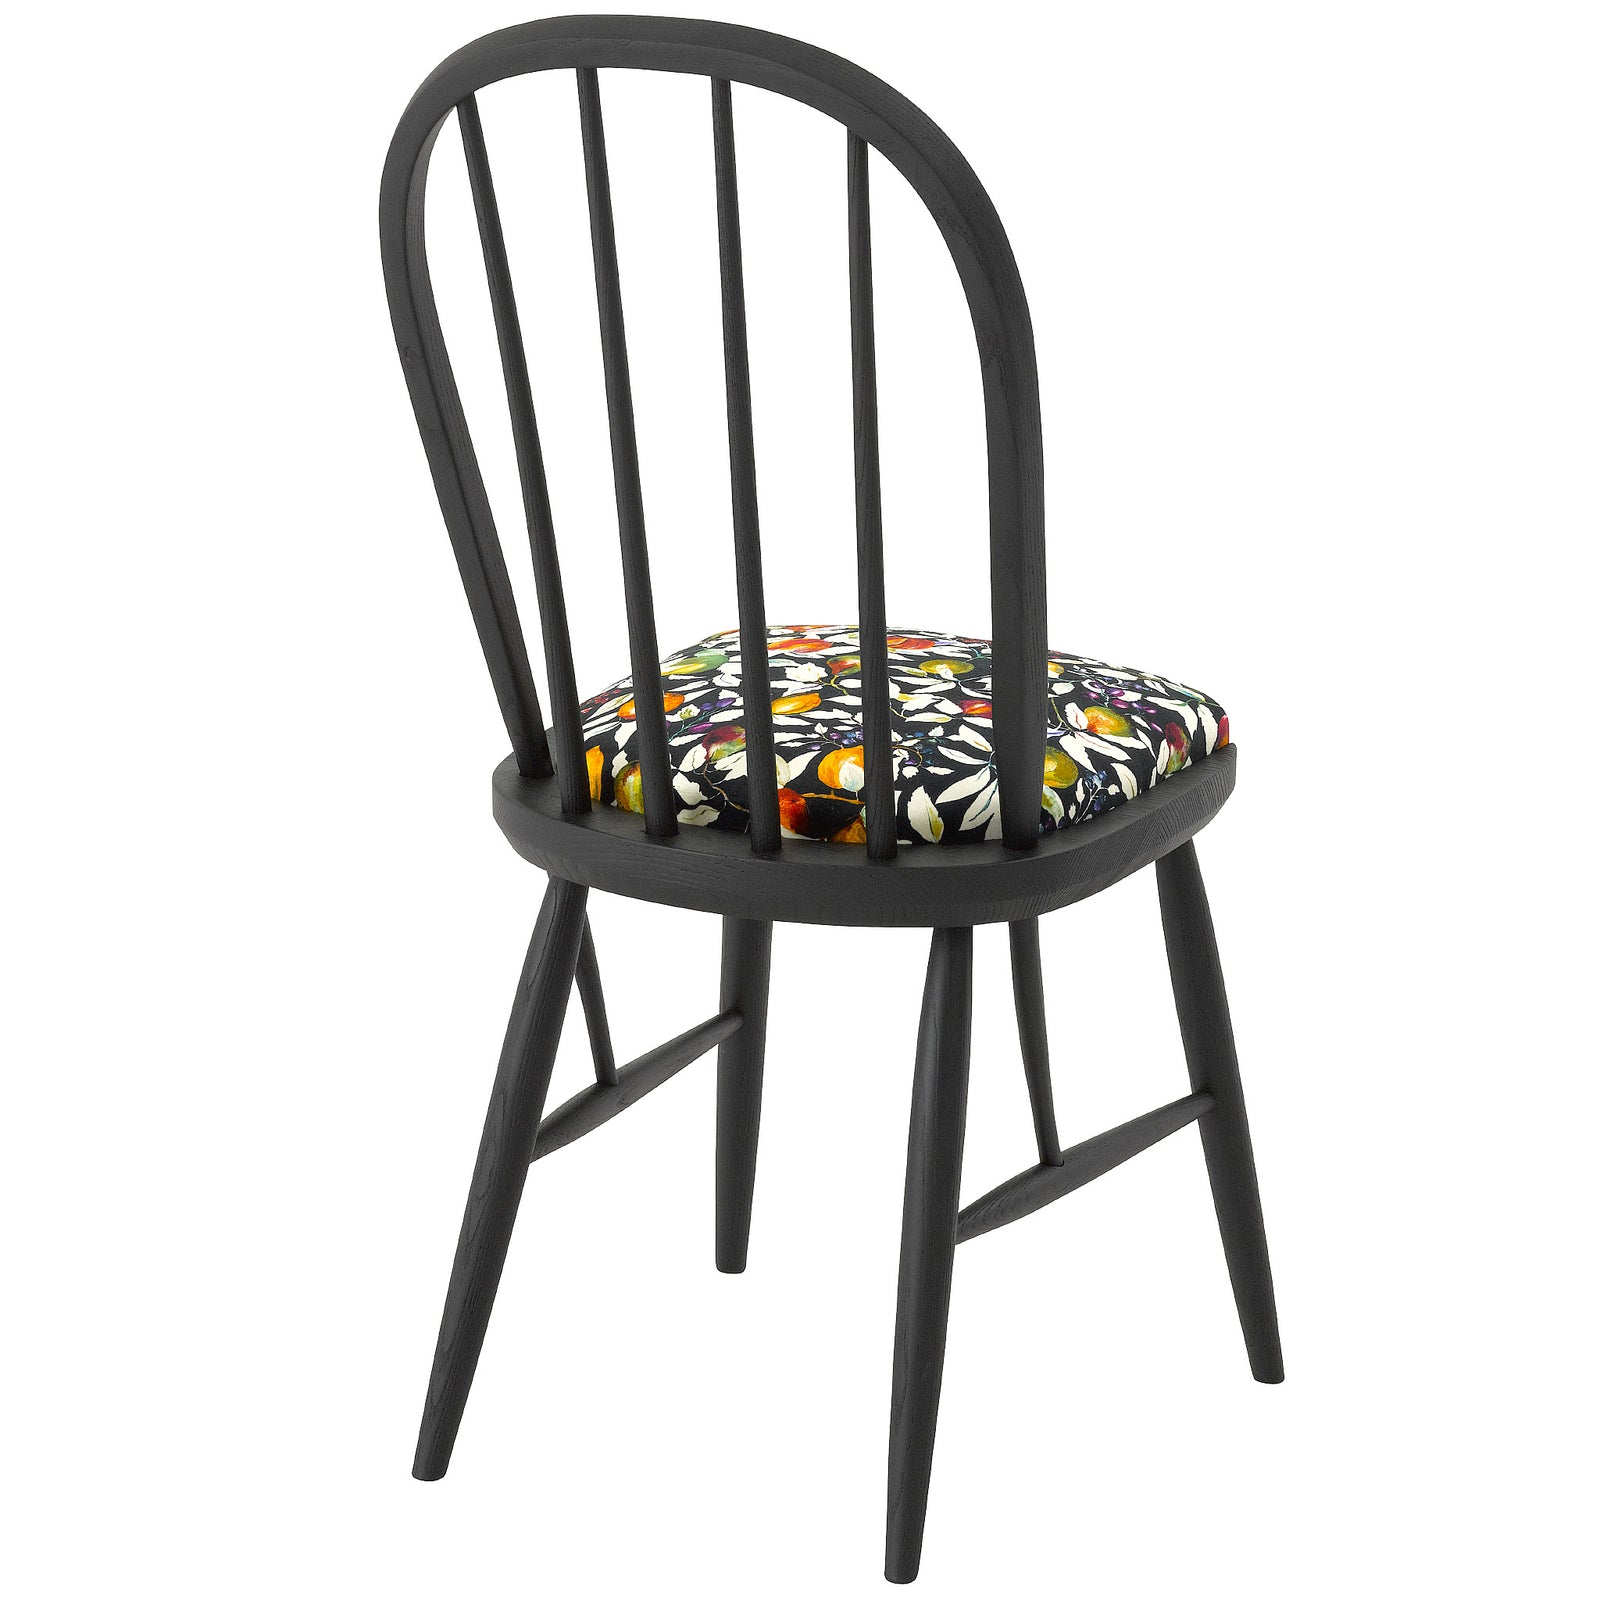 The Elkin Dining Chair Upholstered in Liberty Of London Fruit Billett